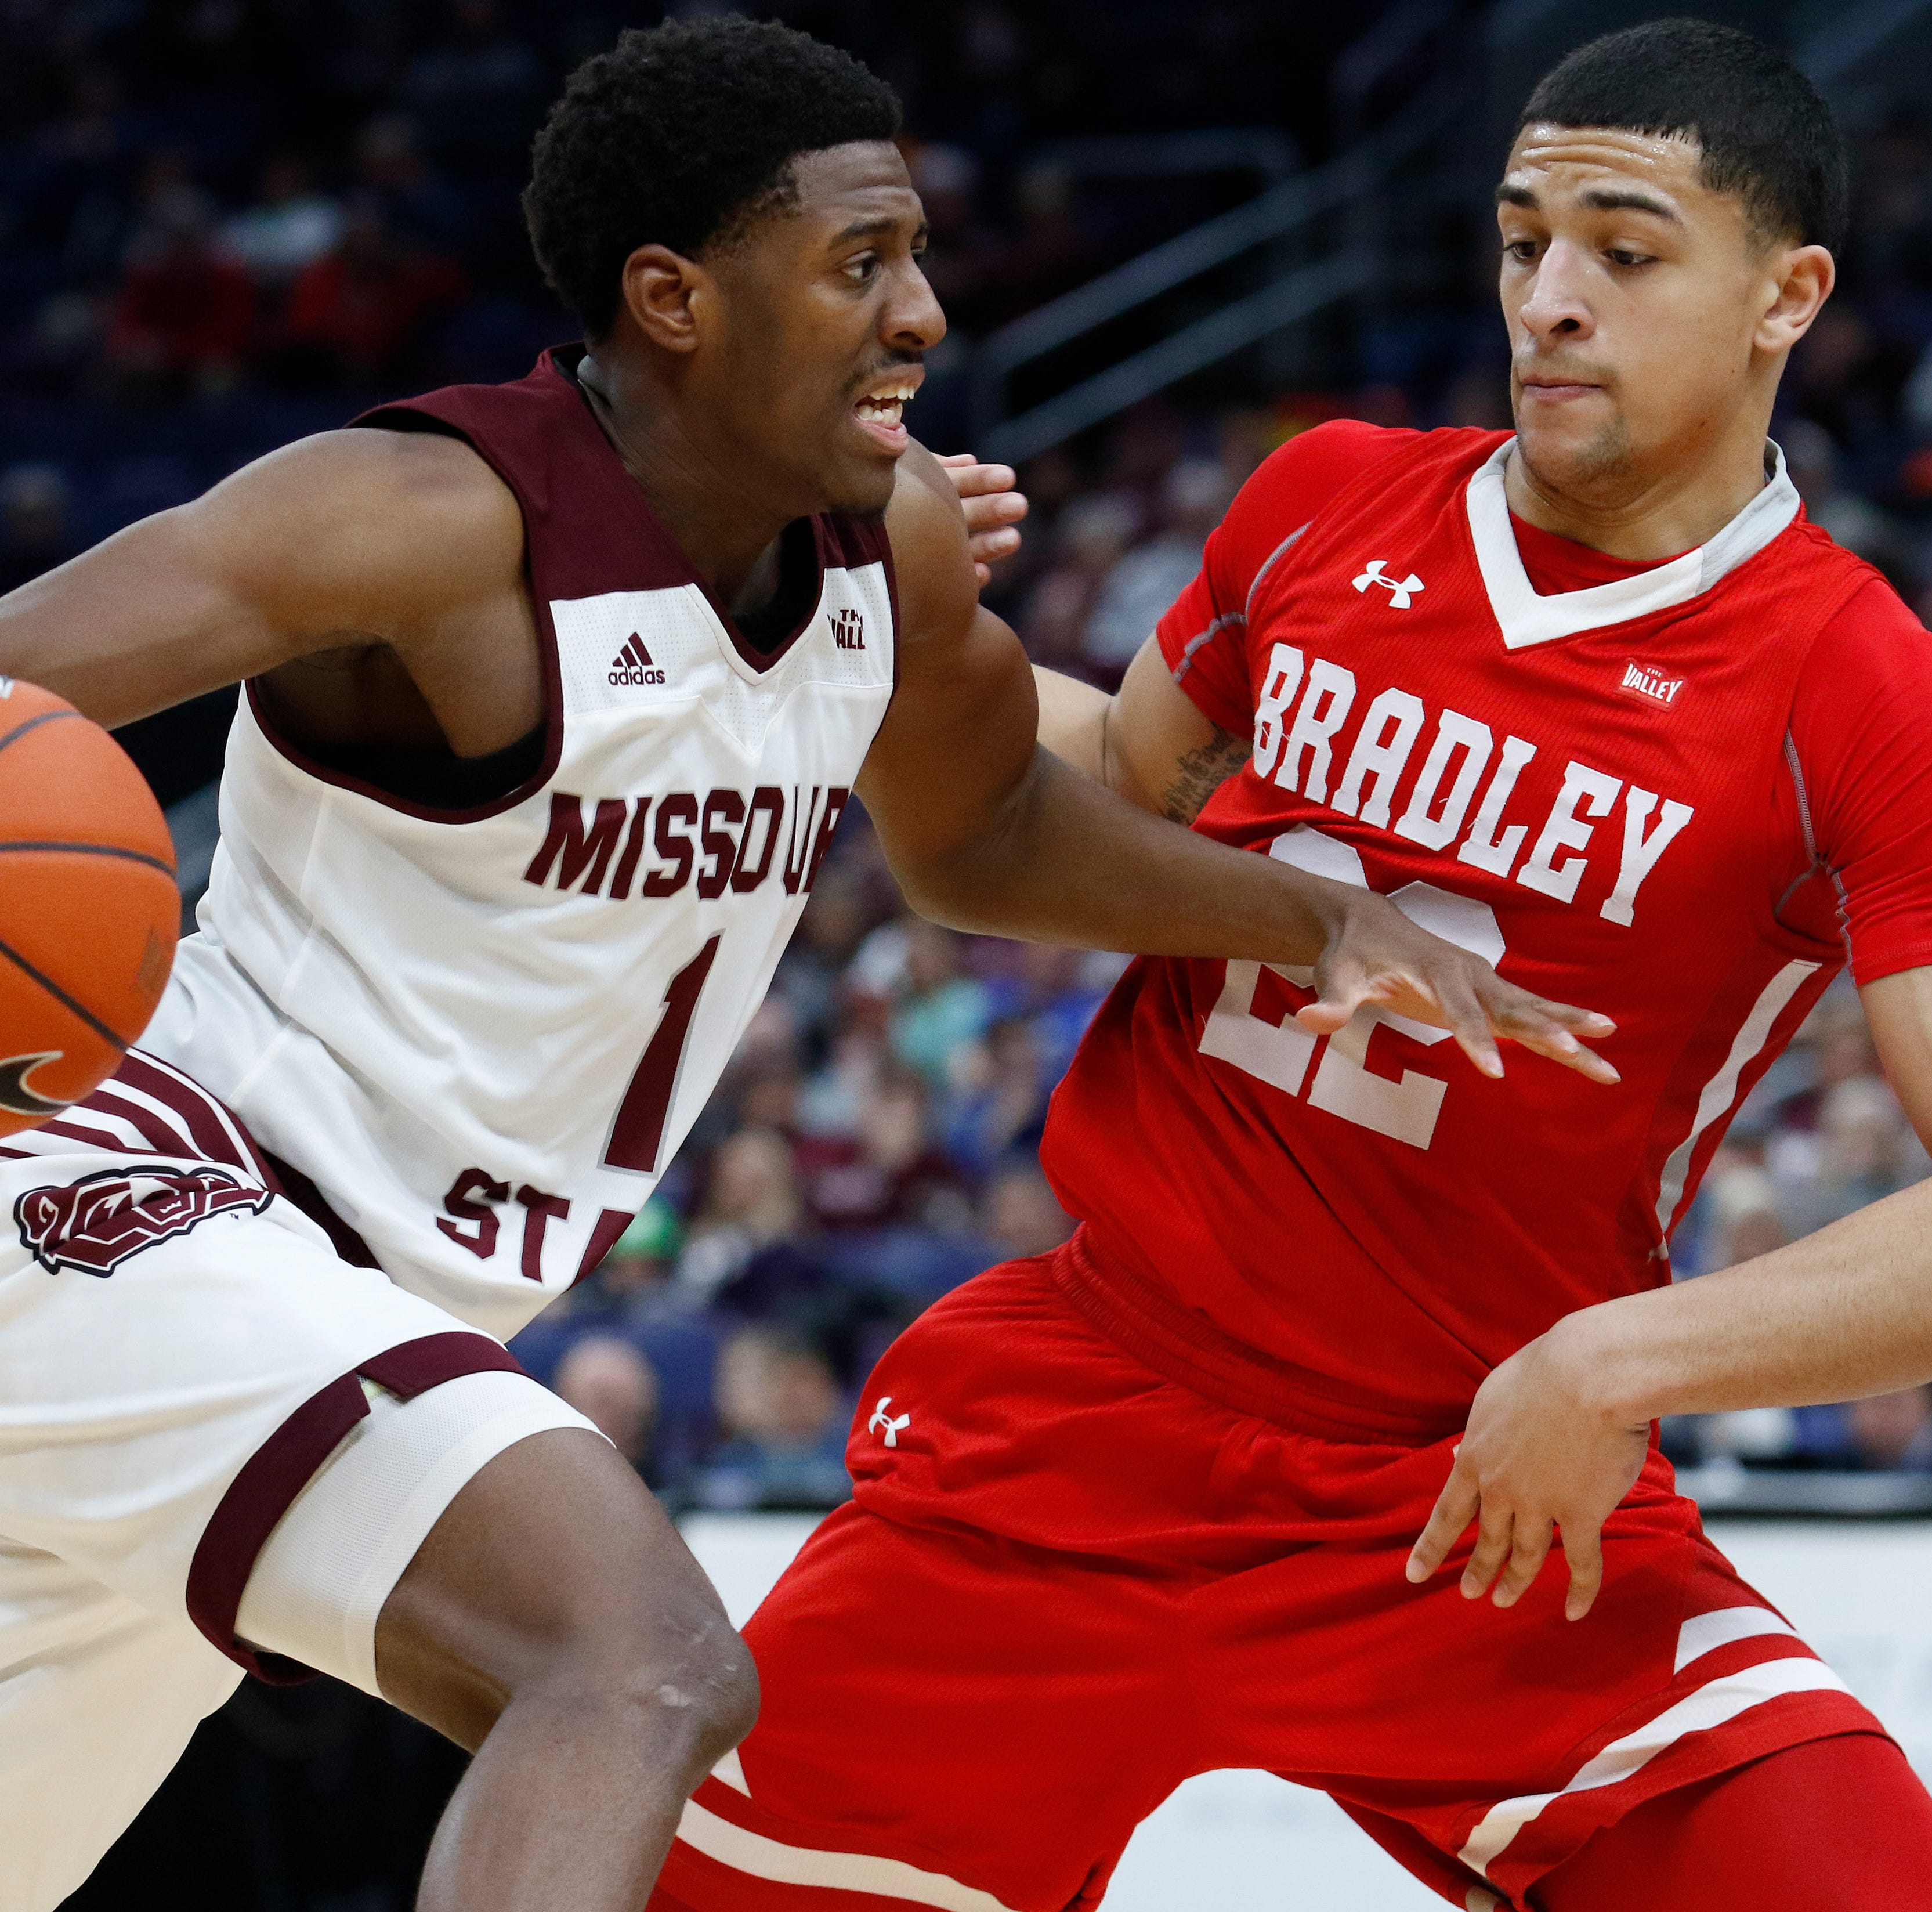 Missouri State's season ends in Arch Madness quarterfinals with loss to Bradley